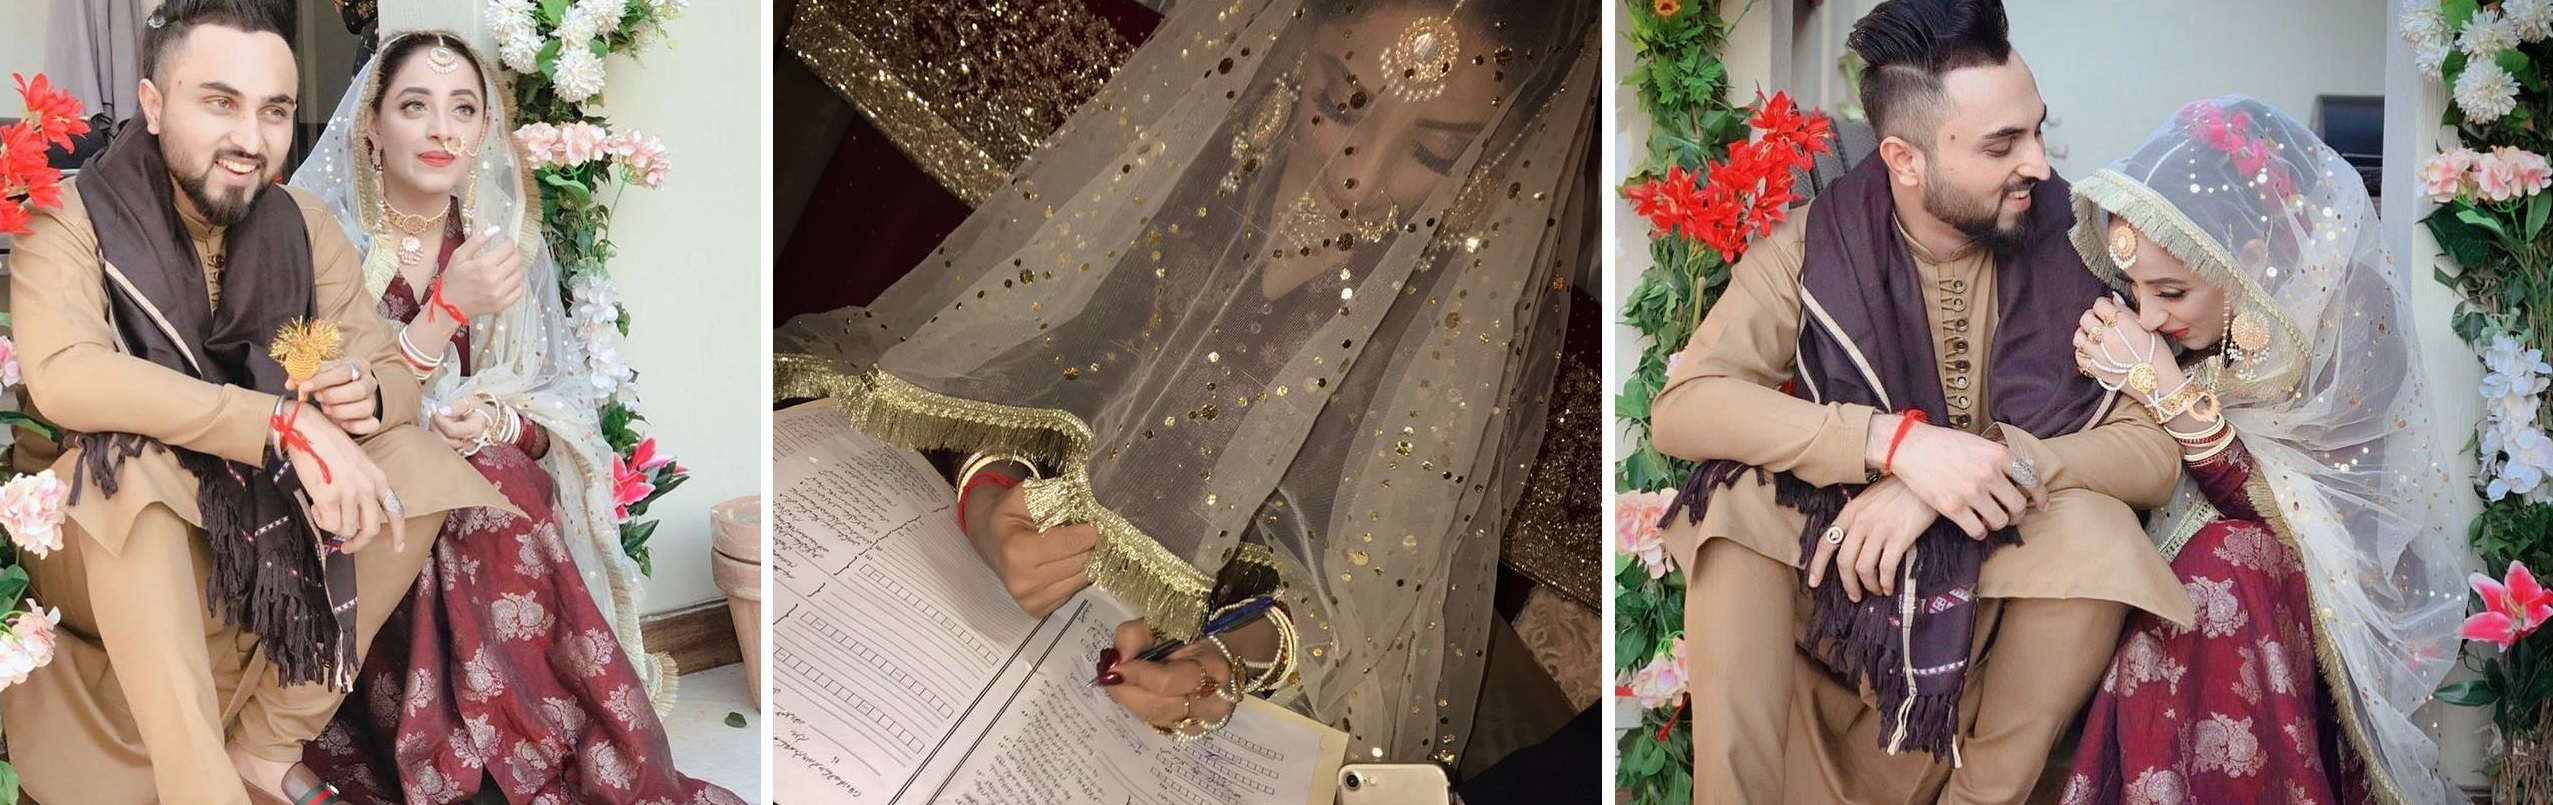 Sanam Chaudhry Actress Nikkah with Singer Somee Chohan Pictures (2)